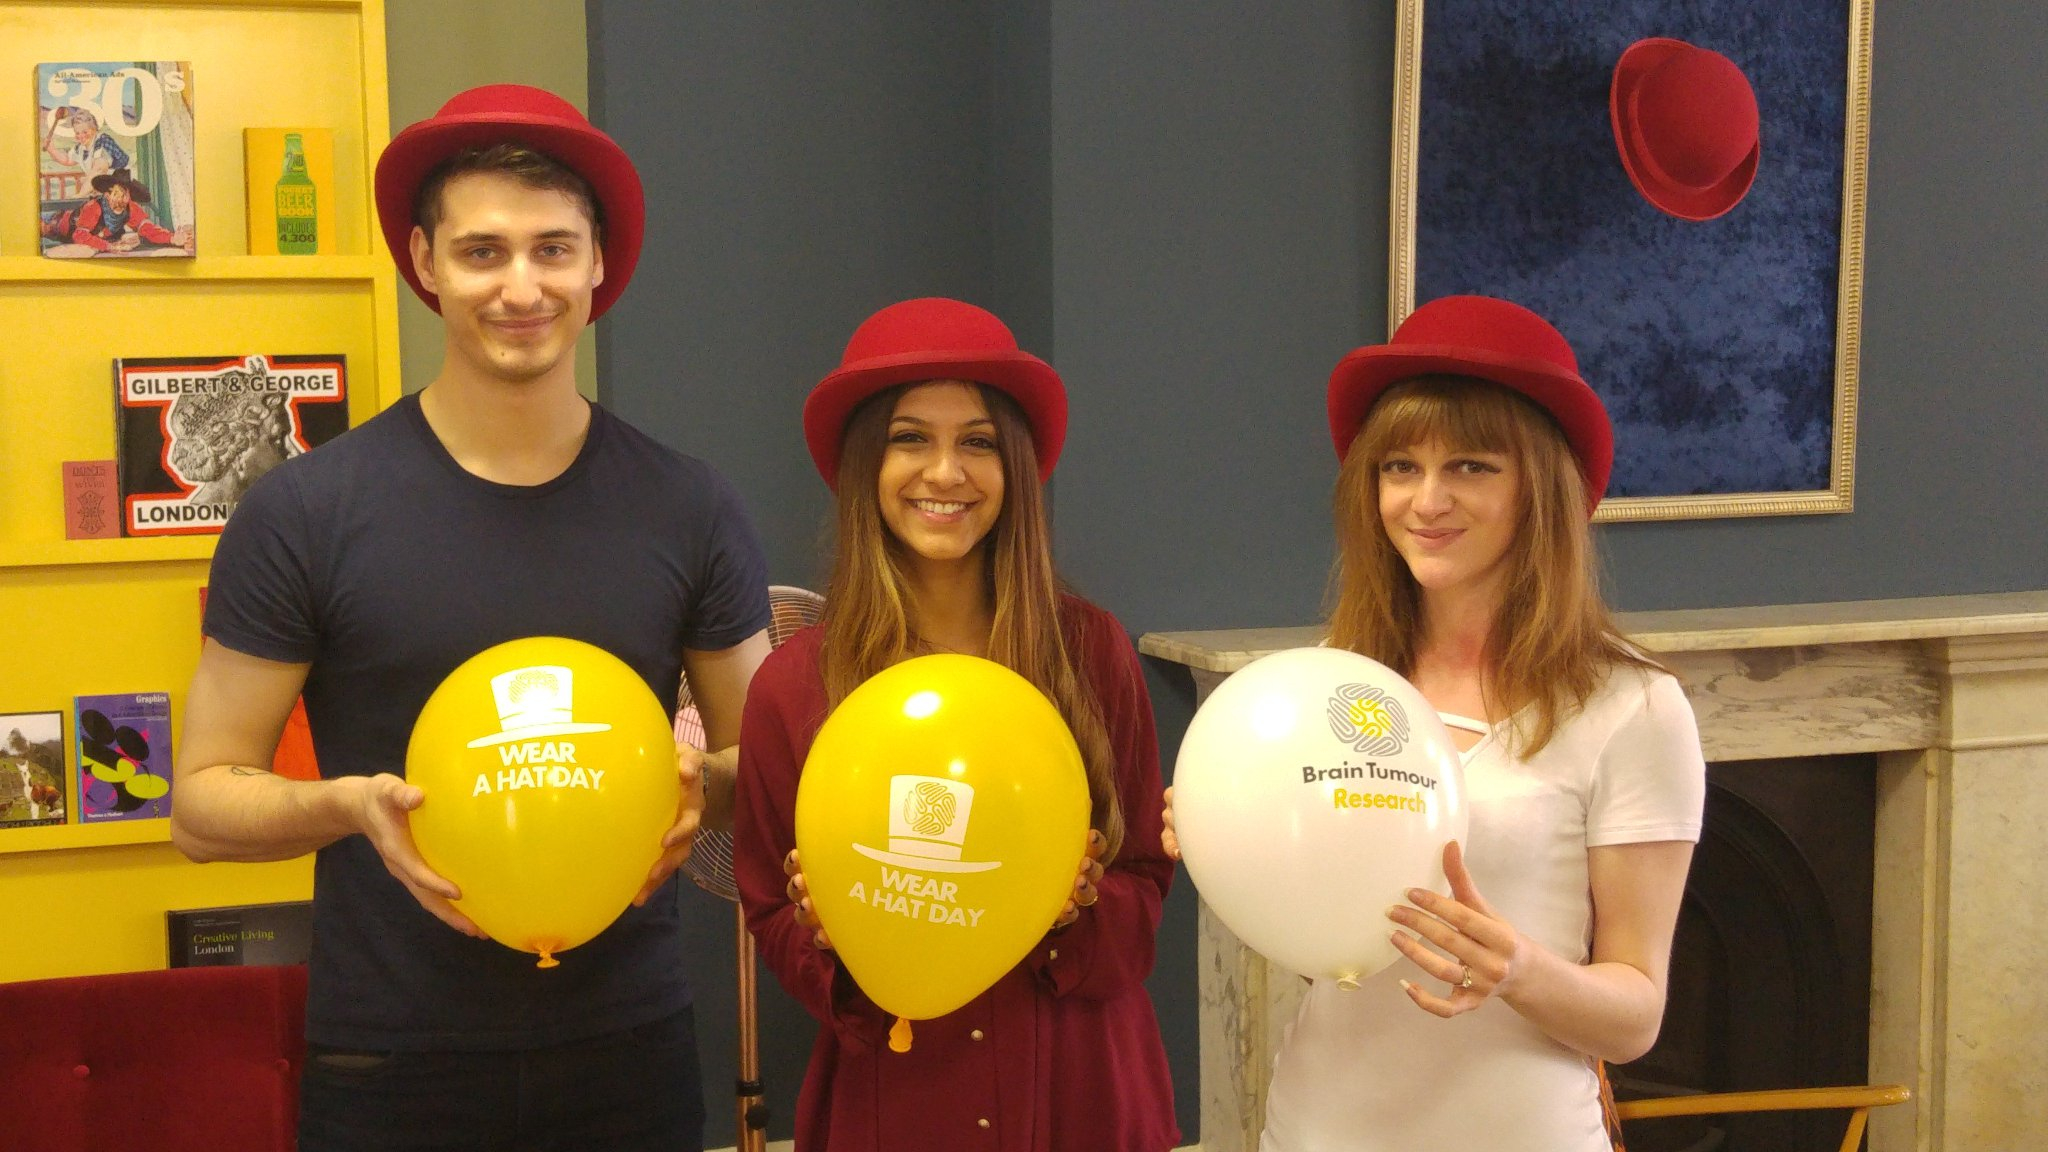 RedHat are raising money for @braintumourrsch on #WearAHatDay #Hattastic https://t.co/dXoQMxZNfH